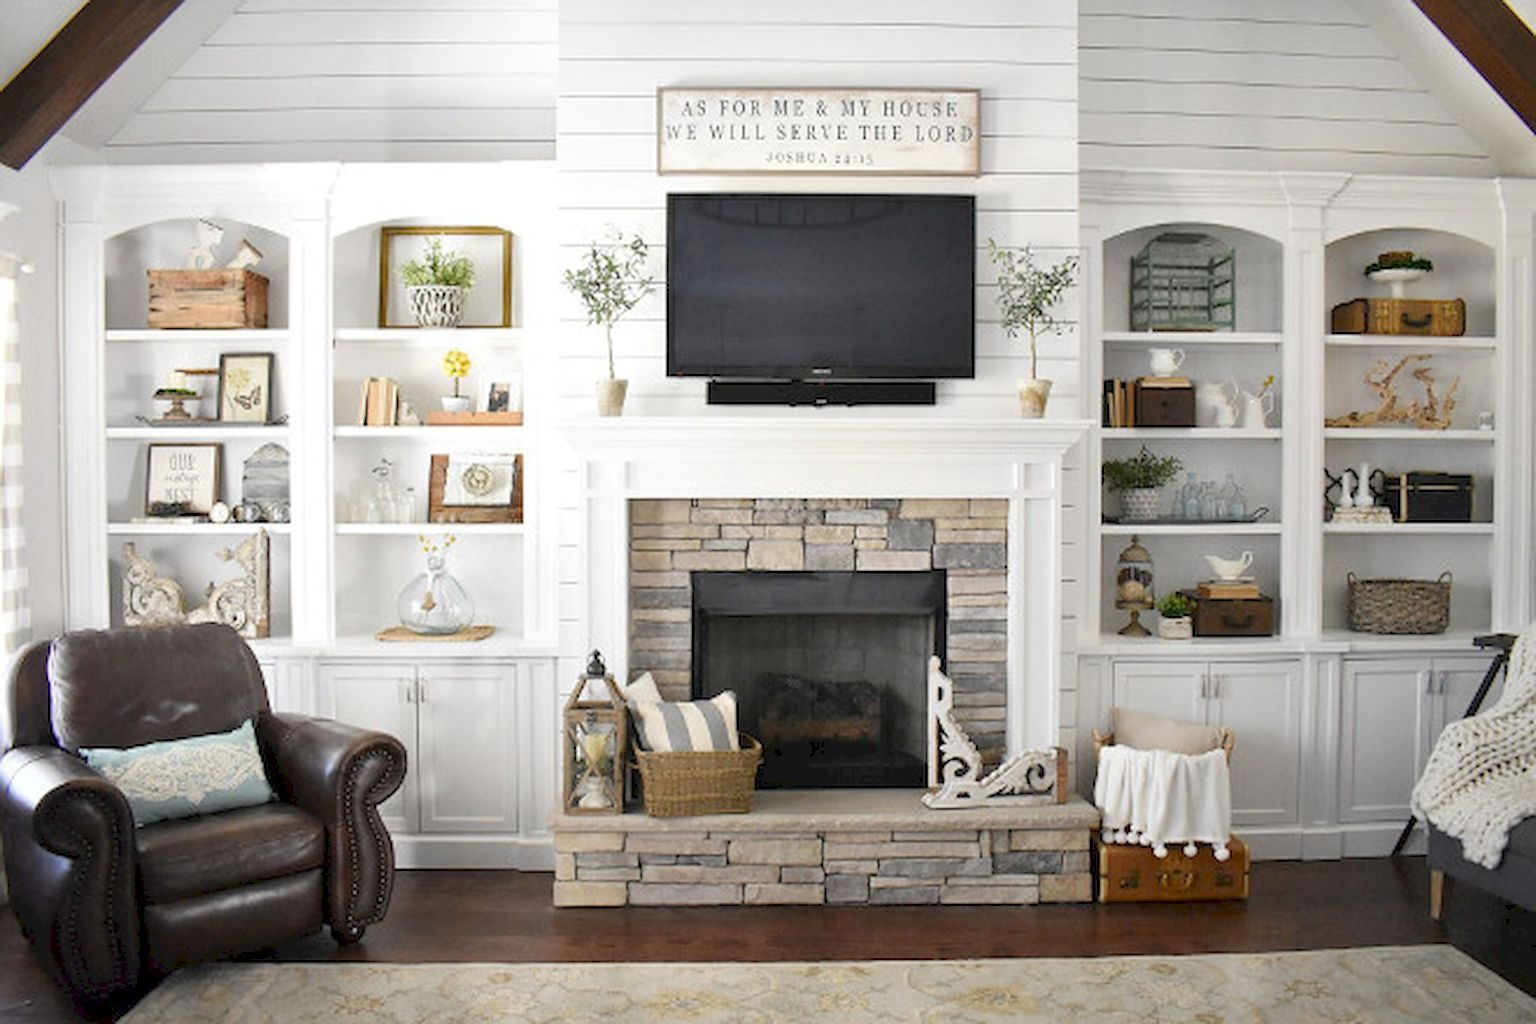 80 incridible rustic farmhouse fireplace ideas makeover (20 ...